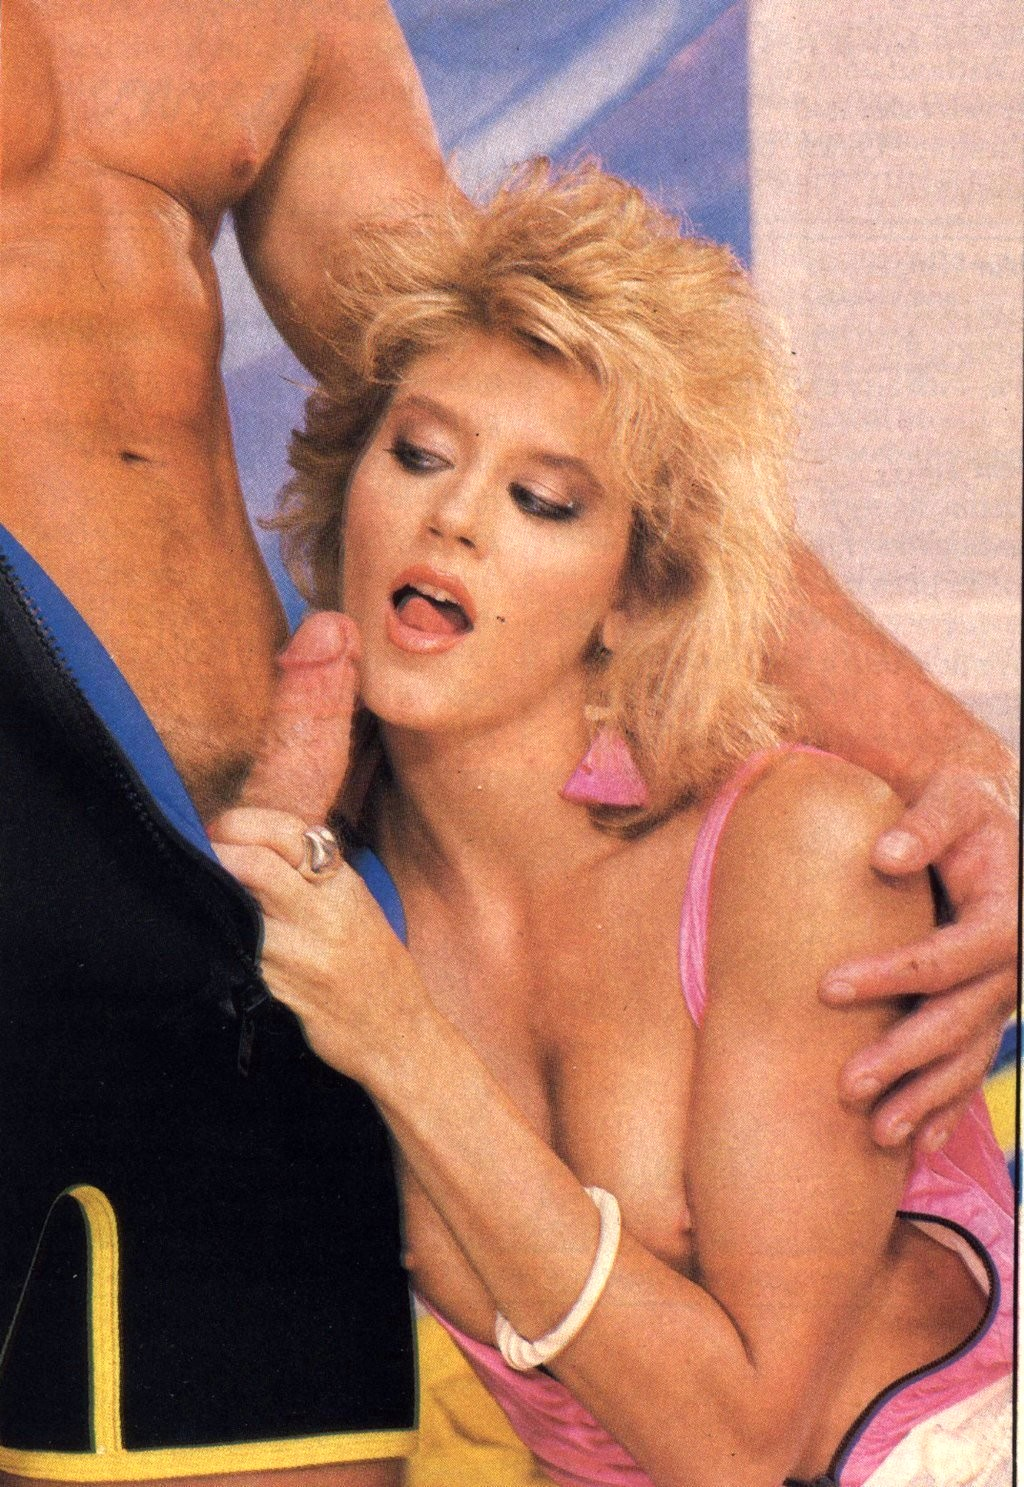 ginger-lynn-nude-solo-mexican-women-with-big-tits-naked-pics